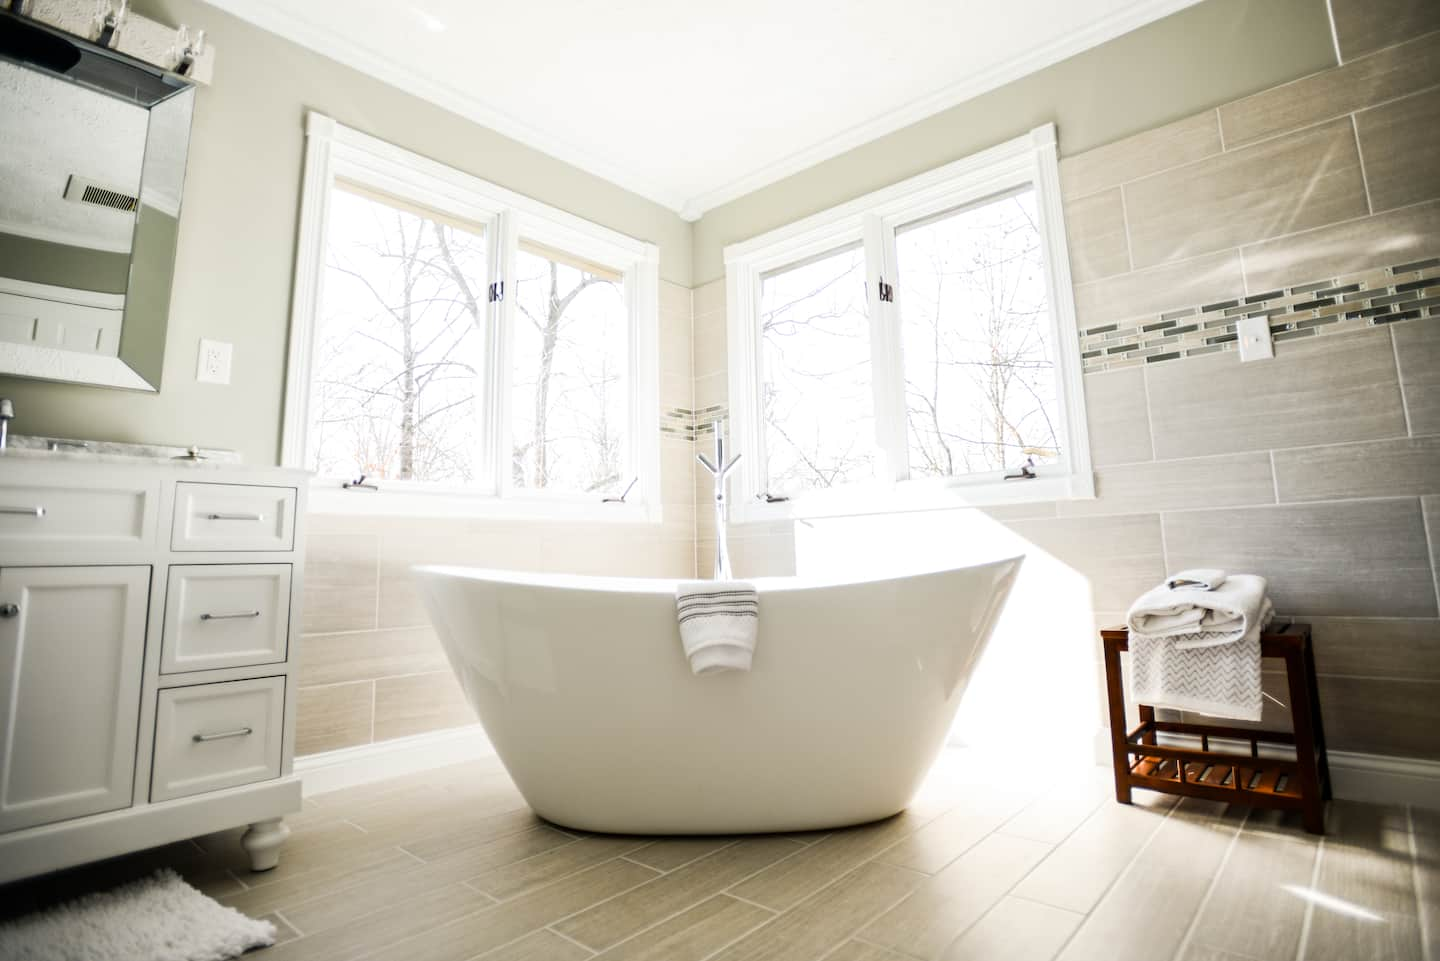 Acrylic Bathtub. Top 7 Best Kansas City MO Bathtub Refinishers   Angie s List